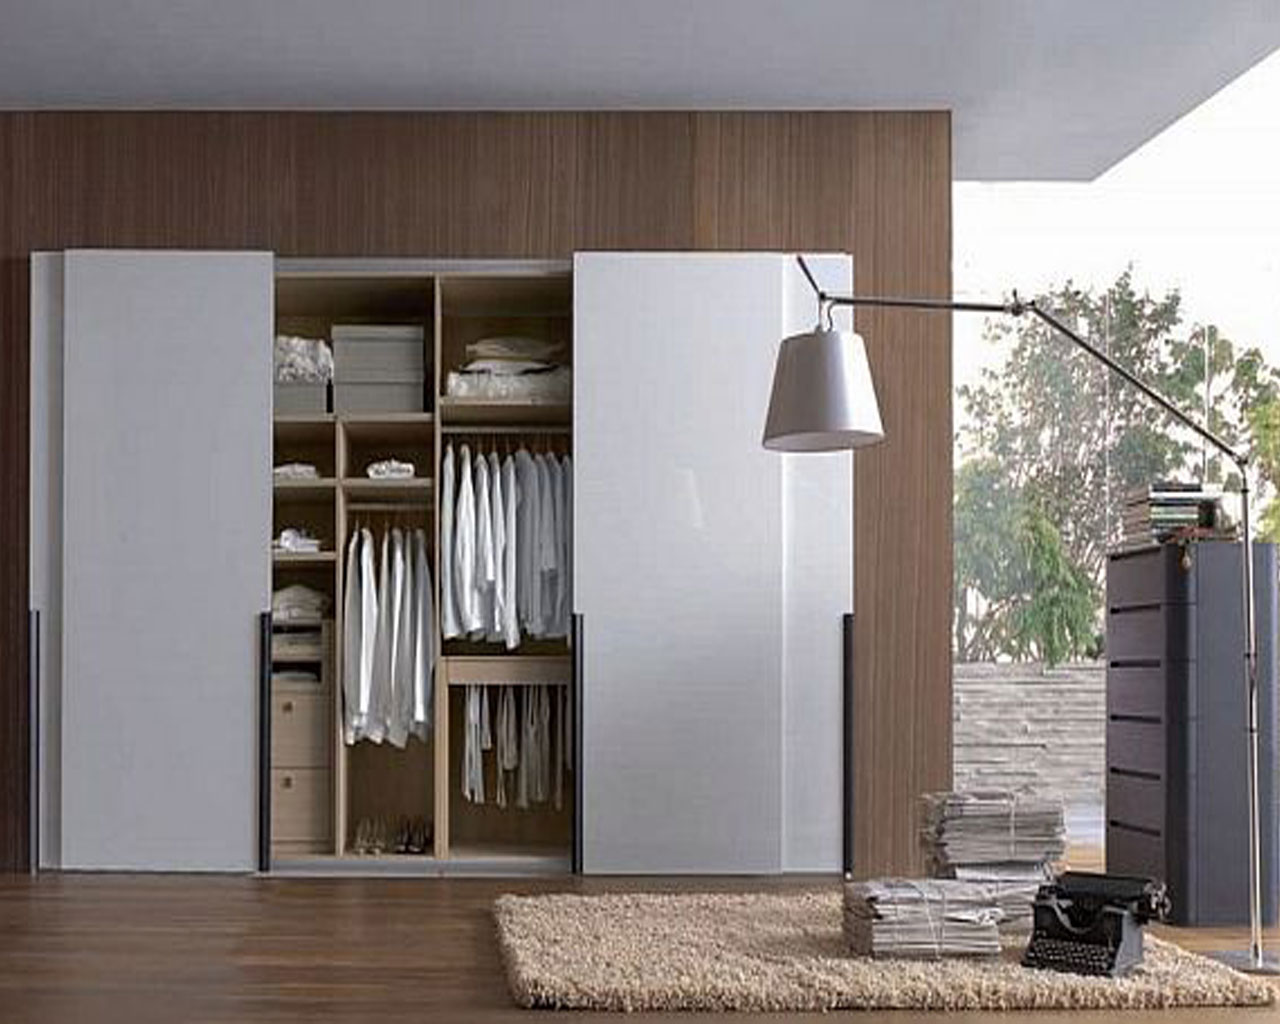 Ordinaire Minimalist Sliding Closet Door In White Modern Floor Lighting Fixture Small  White Interior Rug